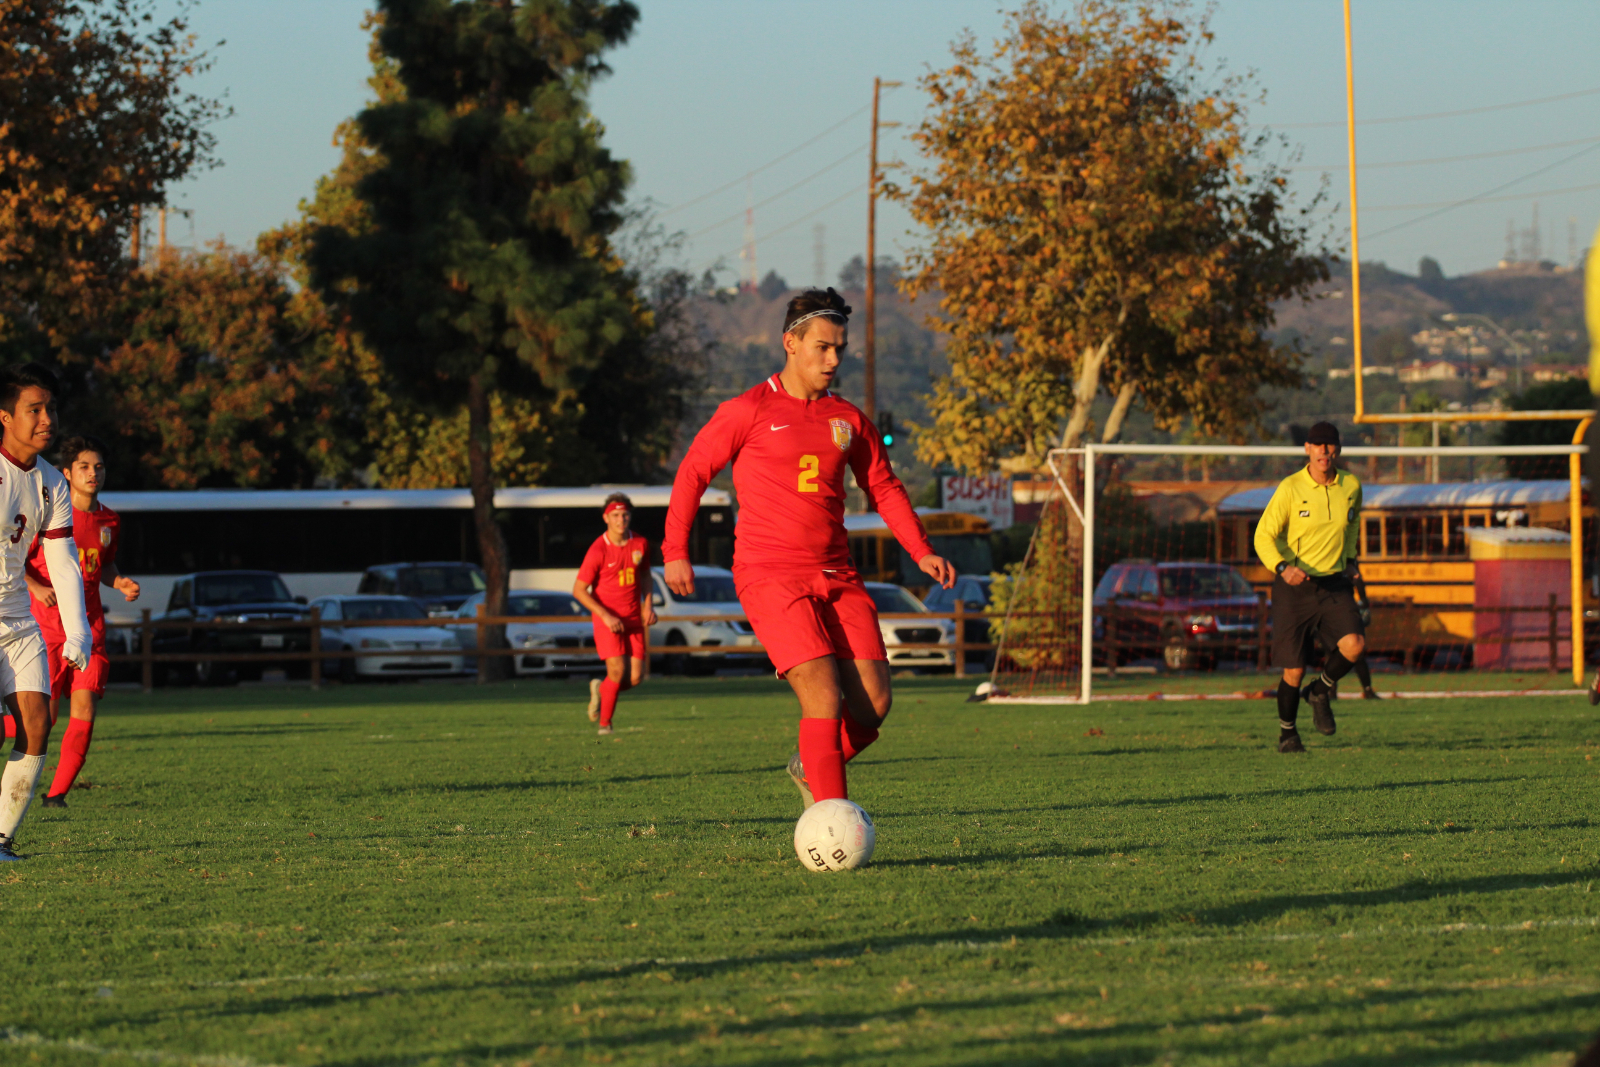 WCHS Varsity Boys Soccer vs. Cantwell Pictures (Volume 6)